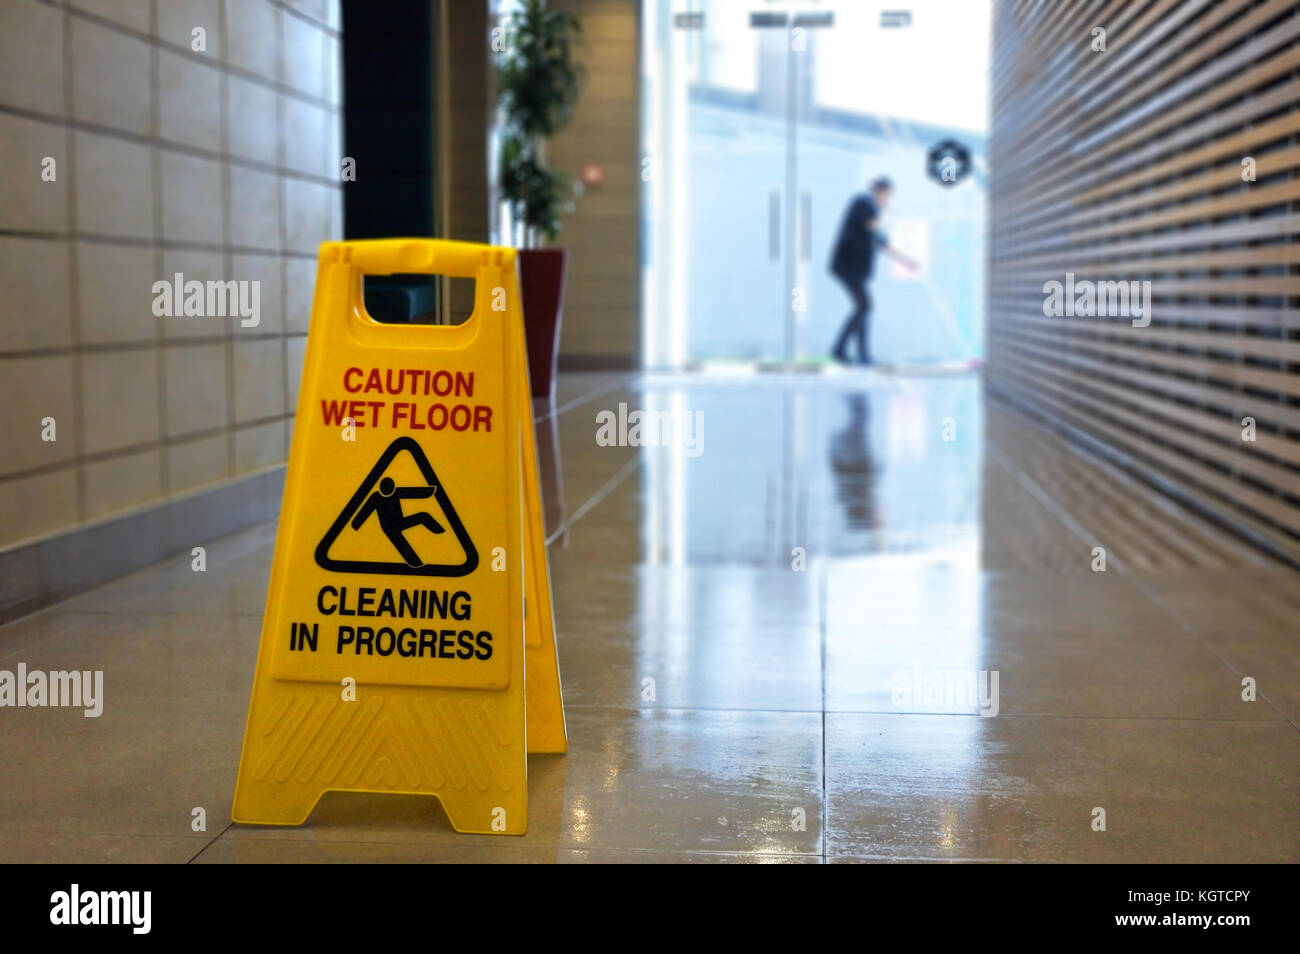 Slippery floor surface warning sign and symbol on a wet floor of unrecognizable building hallway. - Stock Image